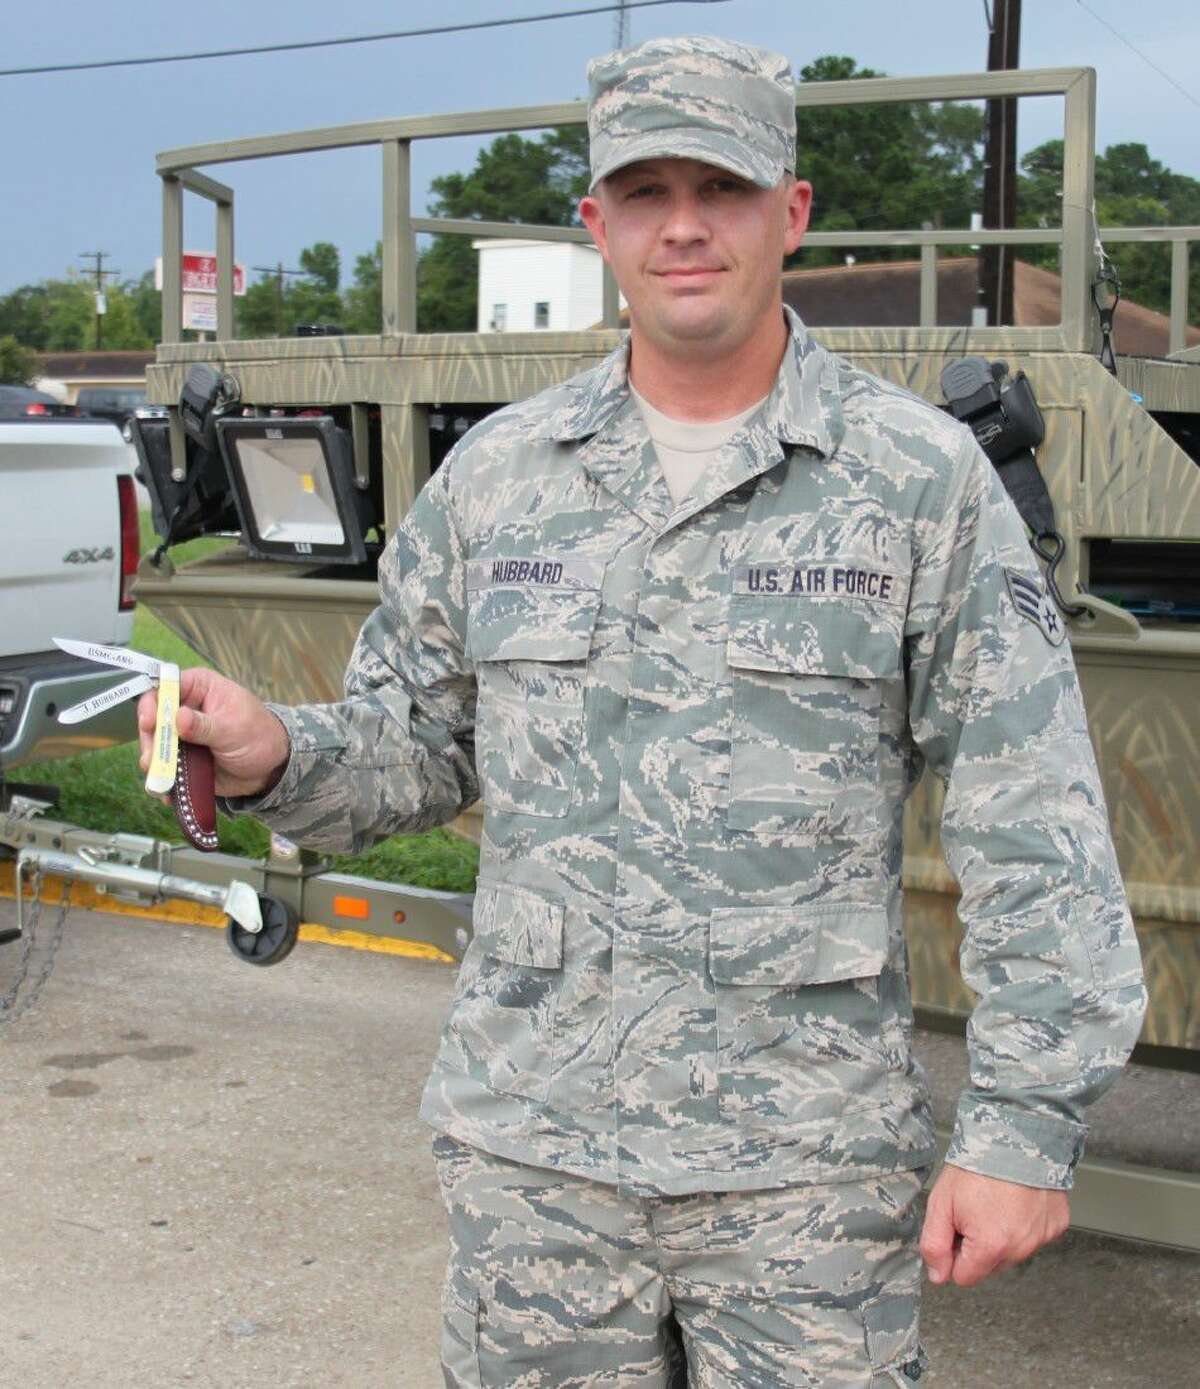 Senior Airman Johnathon Hubbard of the United States Air Force is presented with an engraved knife as a gift from the Wicked Water Outfitters for his birthday. The knife bears the initials of the United States Marine Corp and the Air National Guard as well as his name.